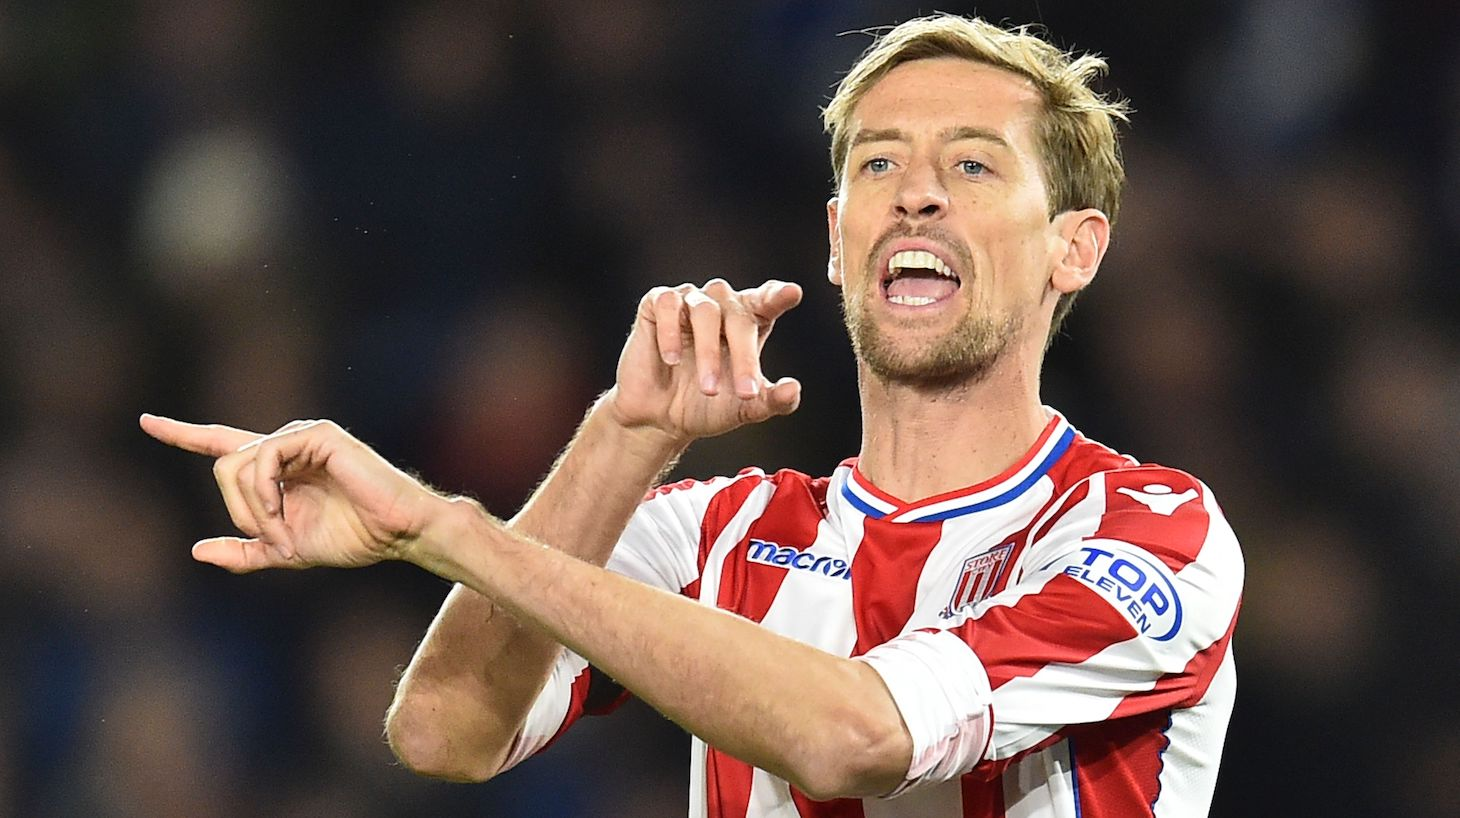 Stoke City's English striker Peter Crouch gives instructions to team-mates as he comes on as a substitute during the English Premier League football match between Brighton and Hove Albion and Stoke City at the American Express Community Stadium in Brighton, southern England on November 20, 2017.